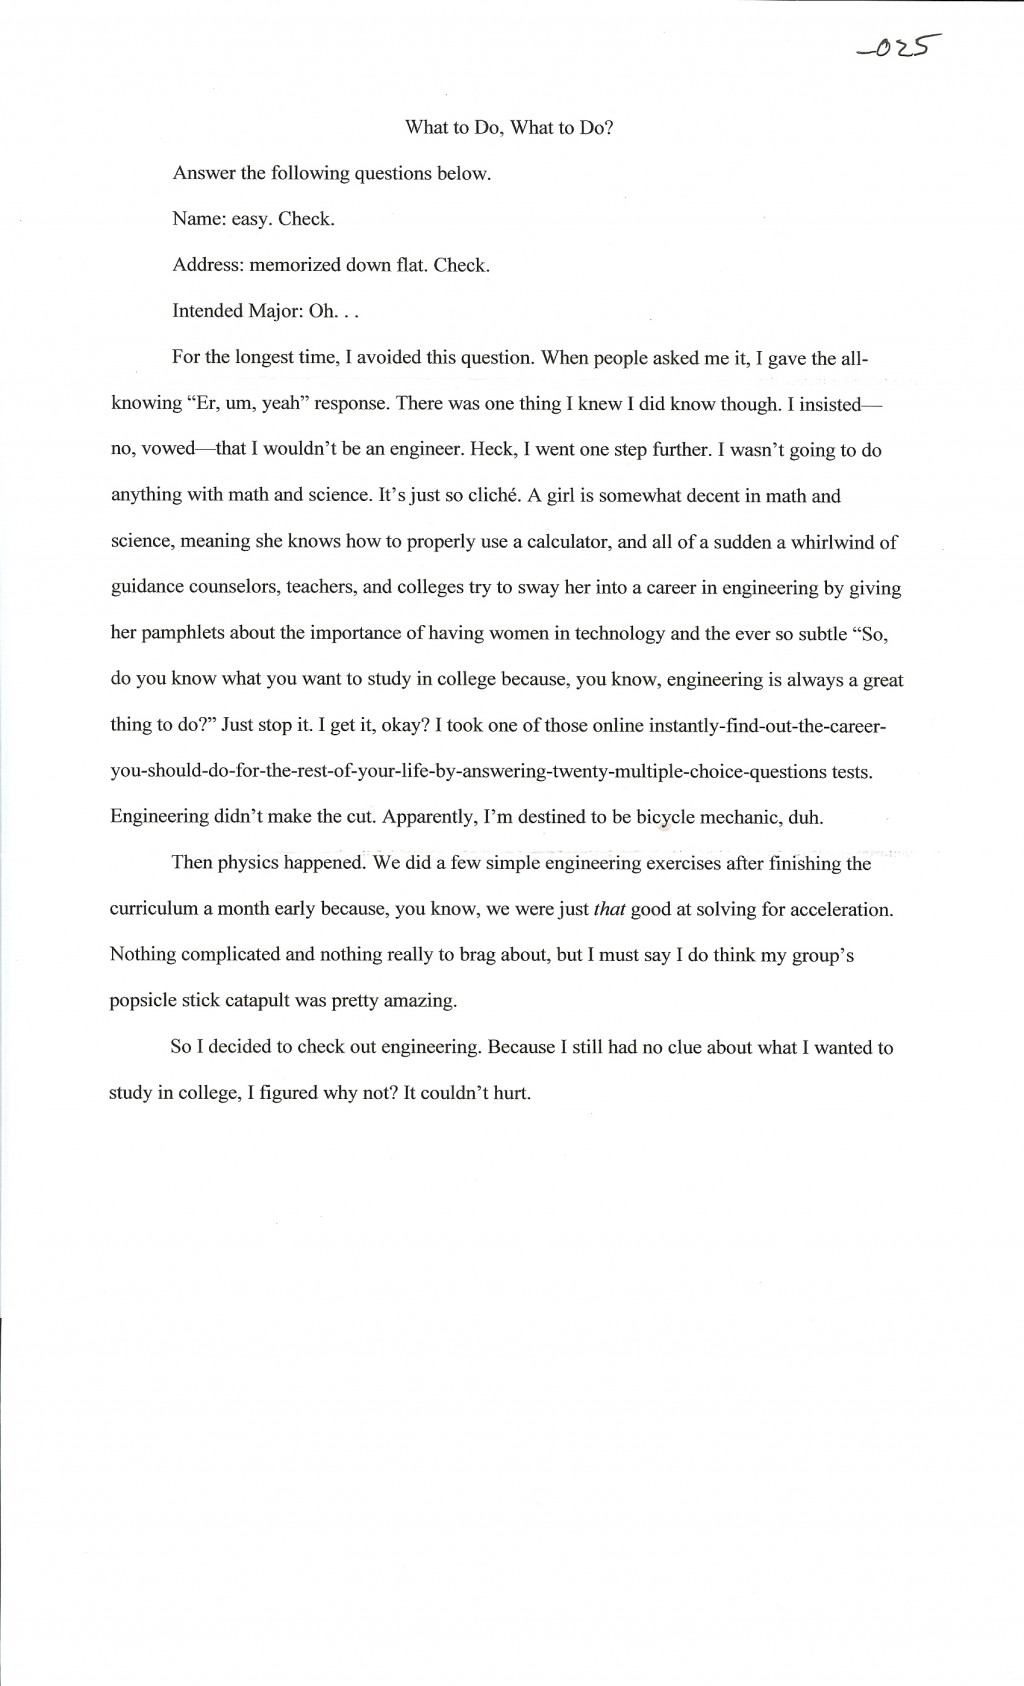 020 Scholarship Essay Titles Contest Writing Personal Caitlin Teague College Contests Student For High School Students Astounding 2019 Middle Large